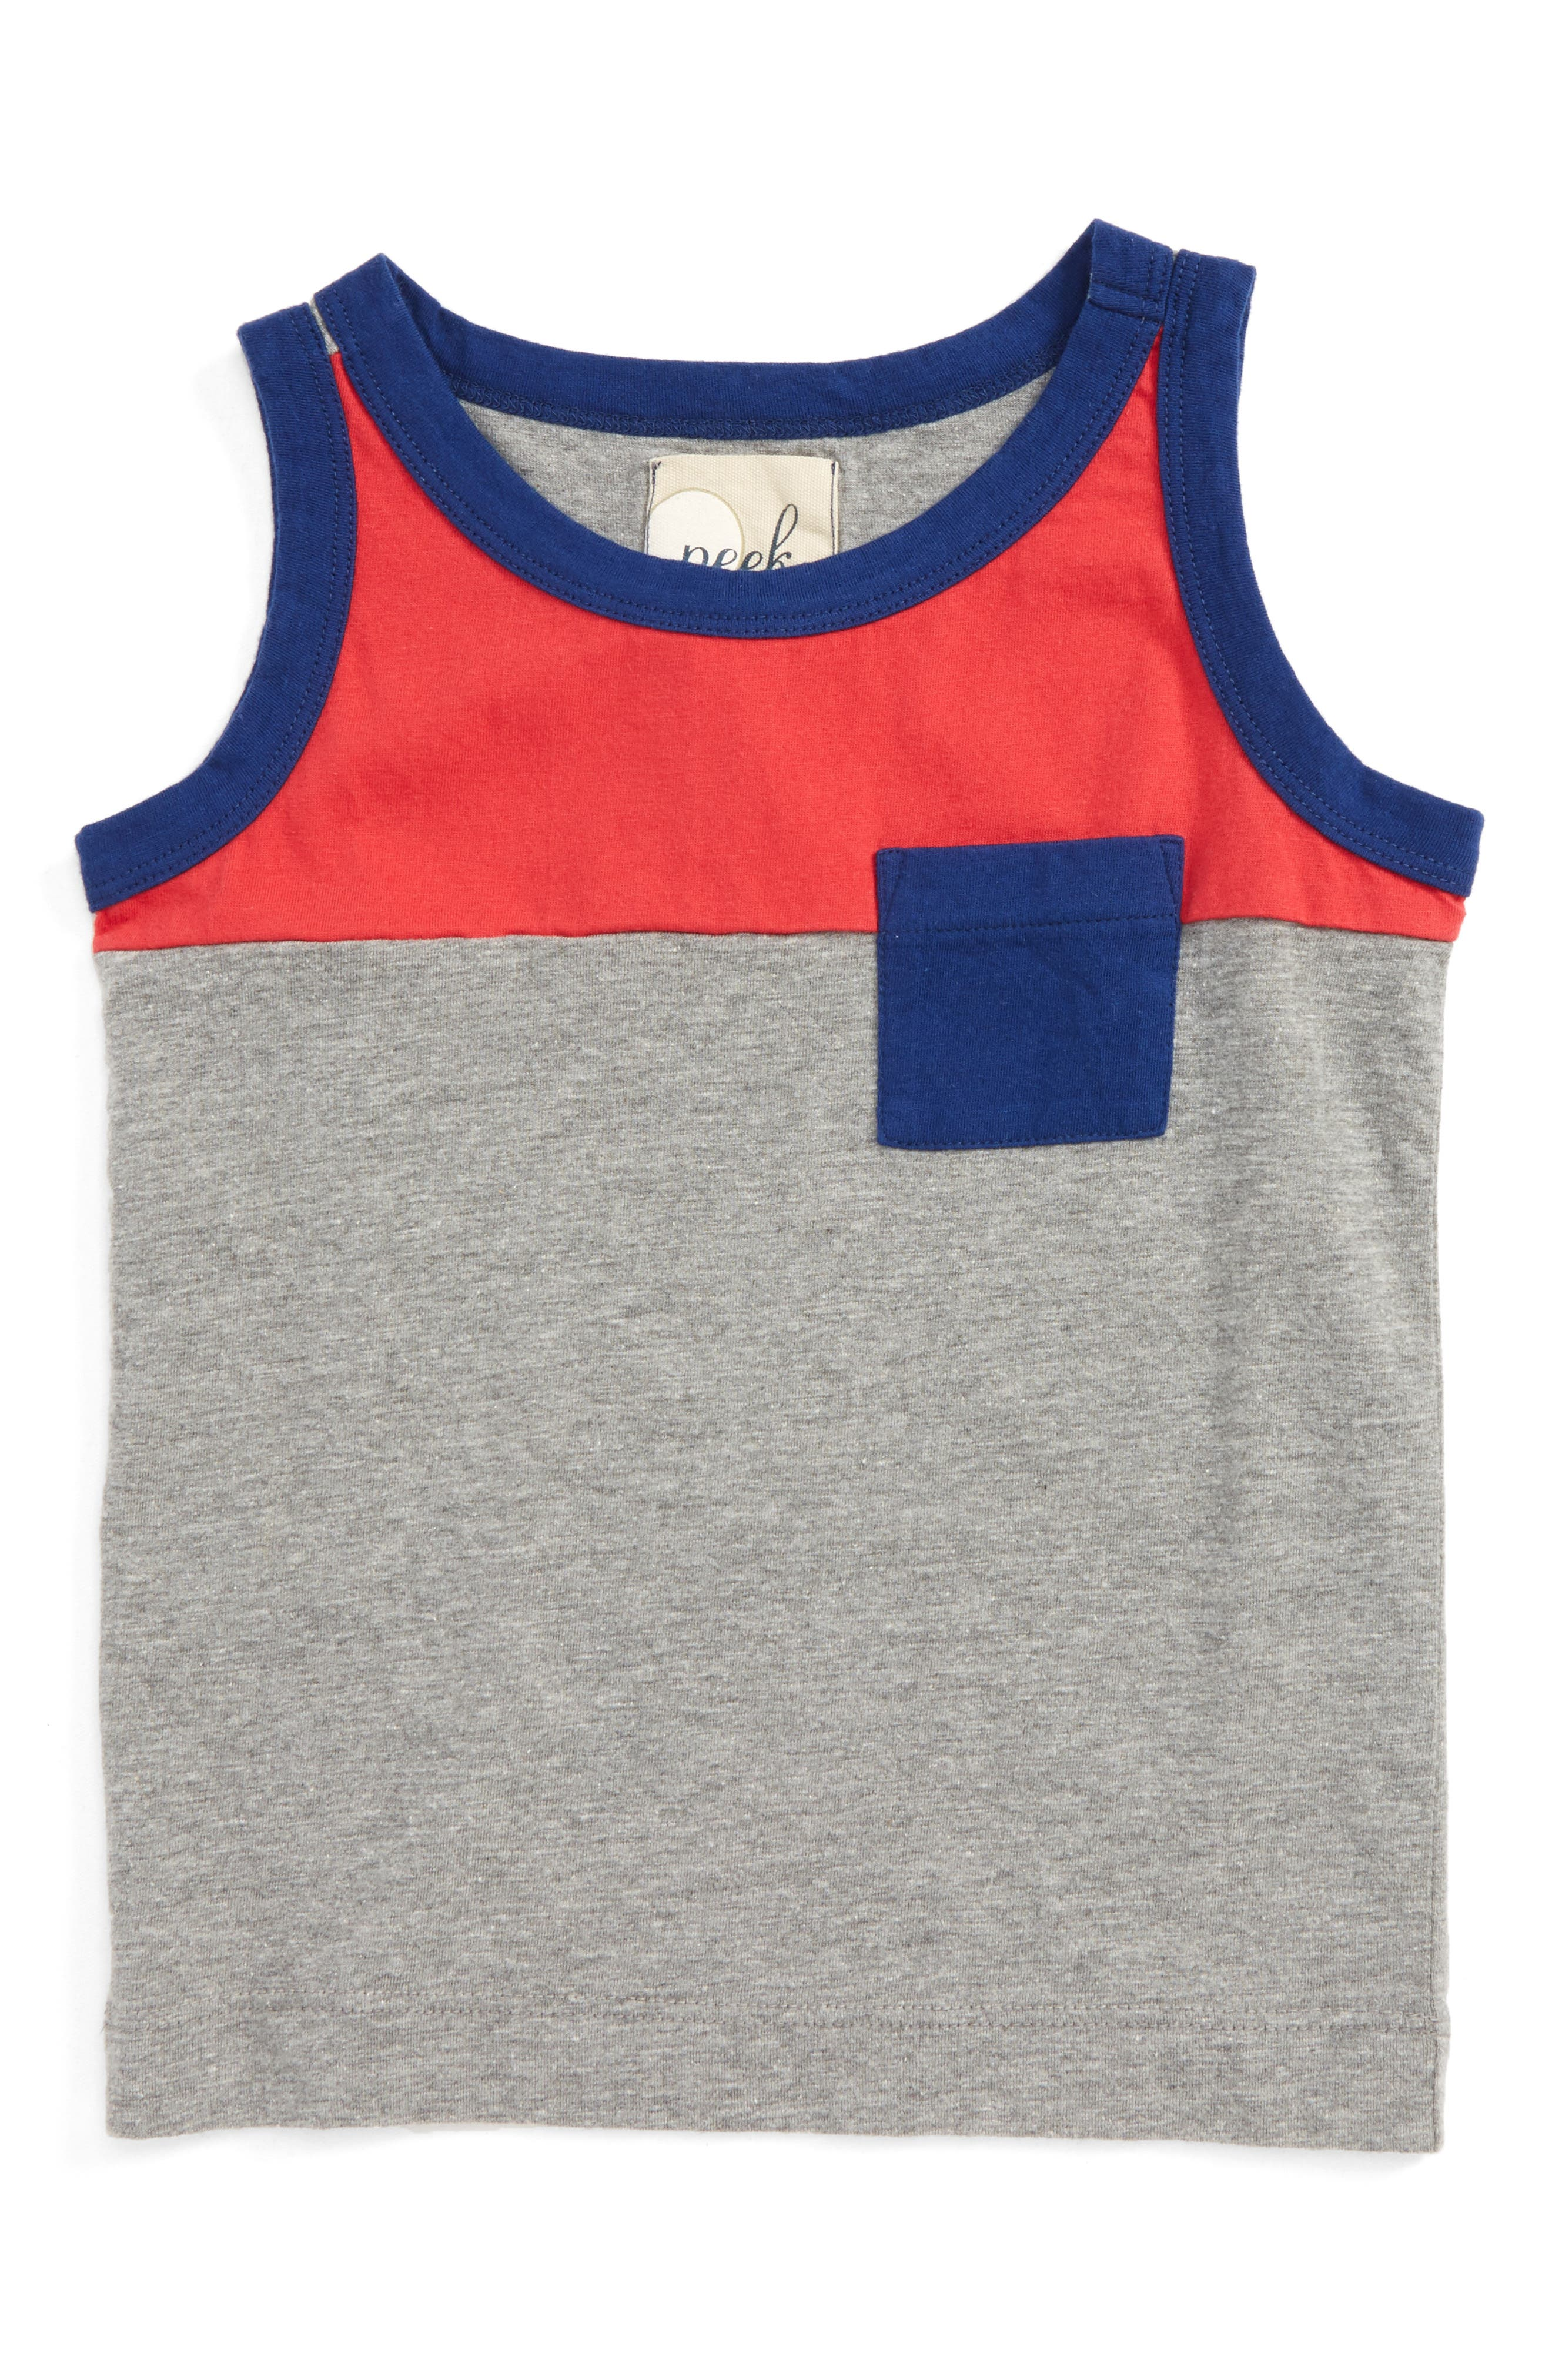 Alternate Image 1 Selected - Peek Colorblock Tank (Toddler Boys, Little Boys & Big Boys)